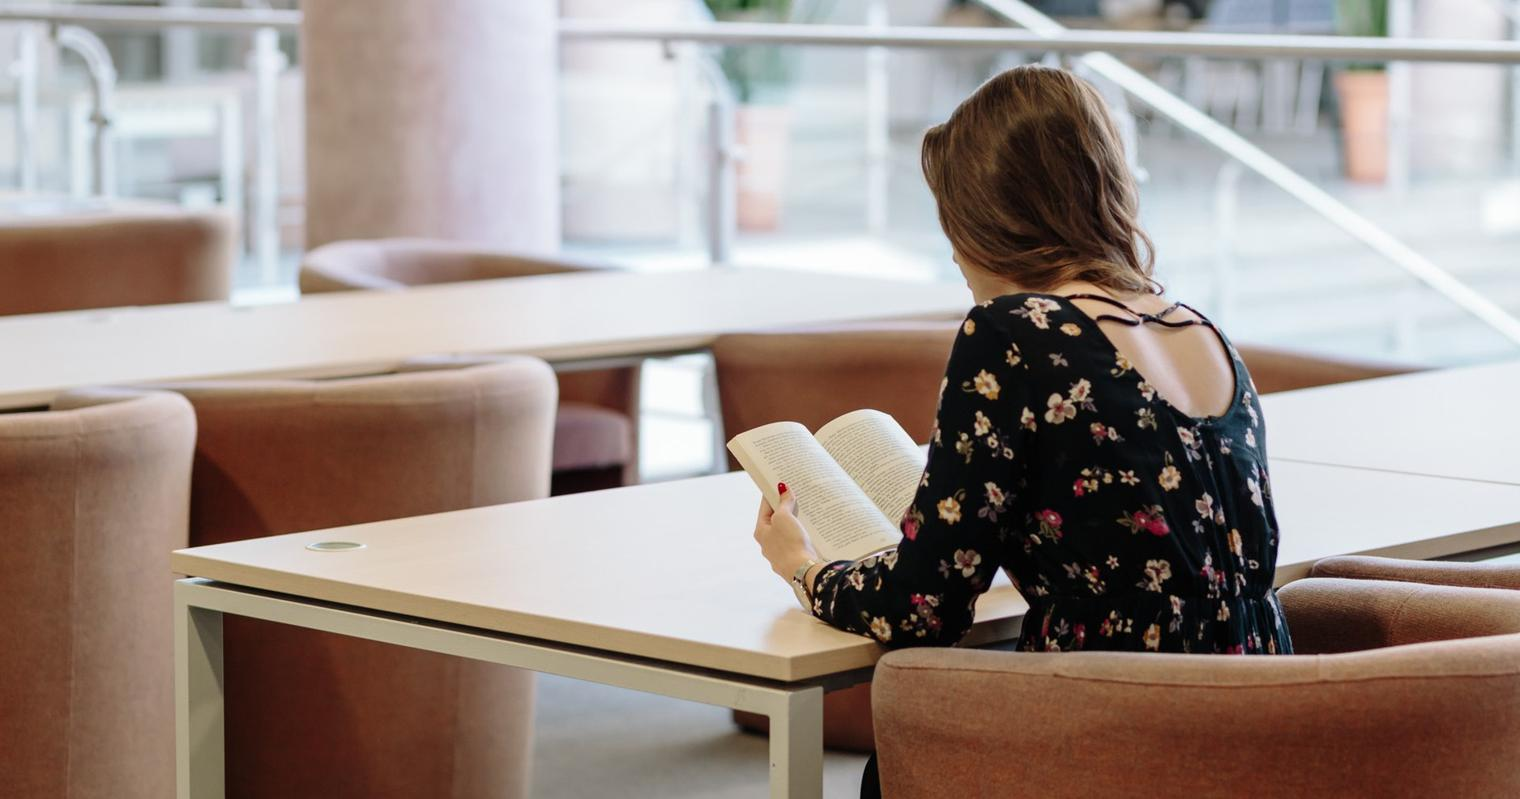 The Top Women's Colleges to Find Entry-Level Candidates